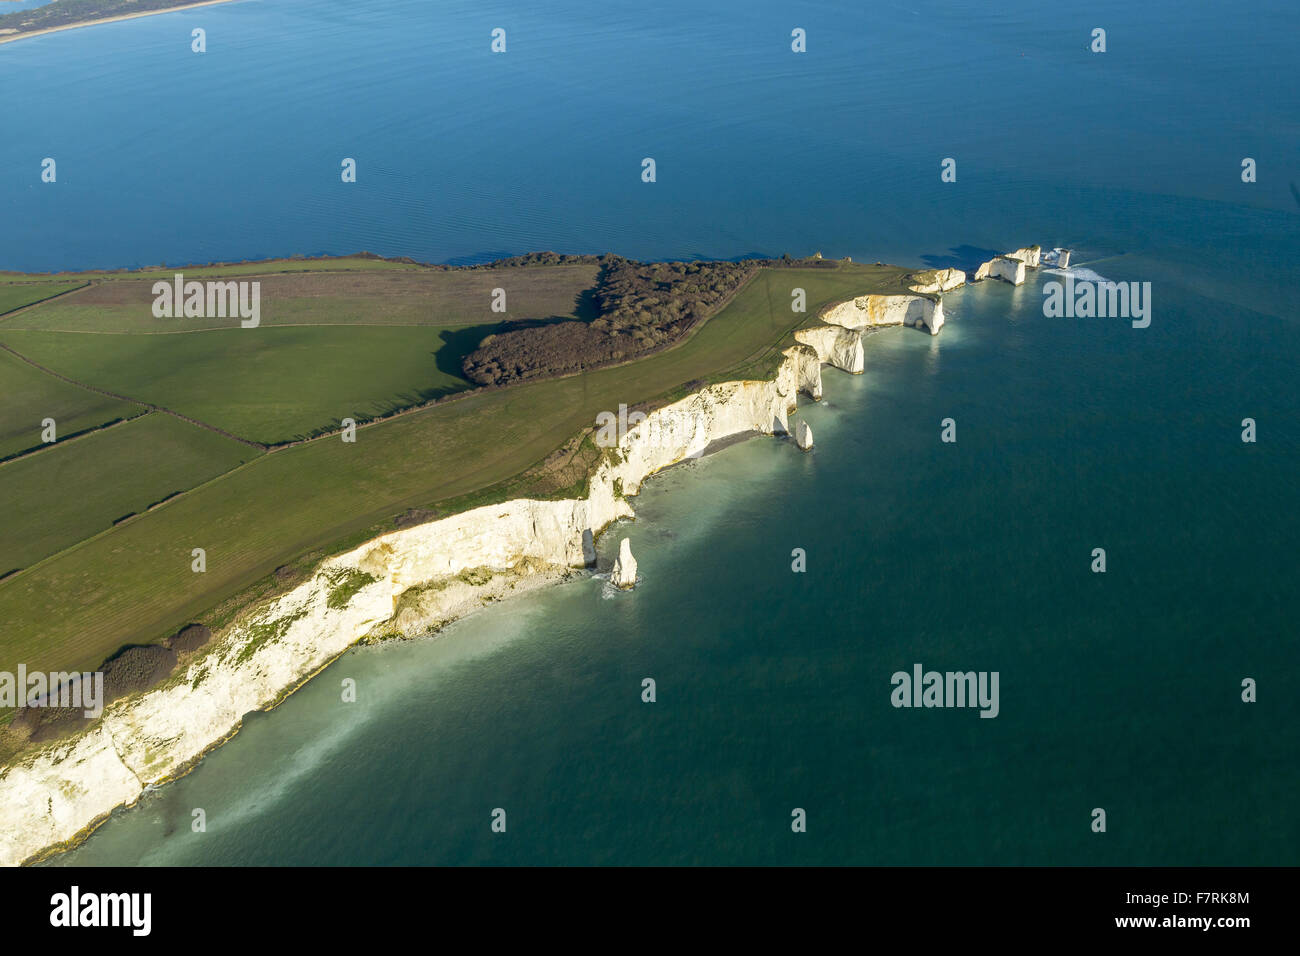 An aerial view of Old Harry Rocks, Isle of Purbeck, Dorset. - Stock Image